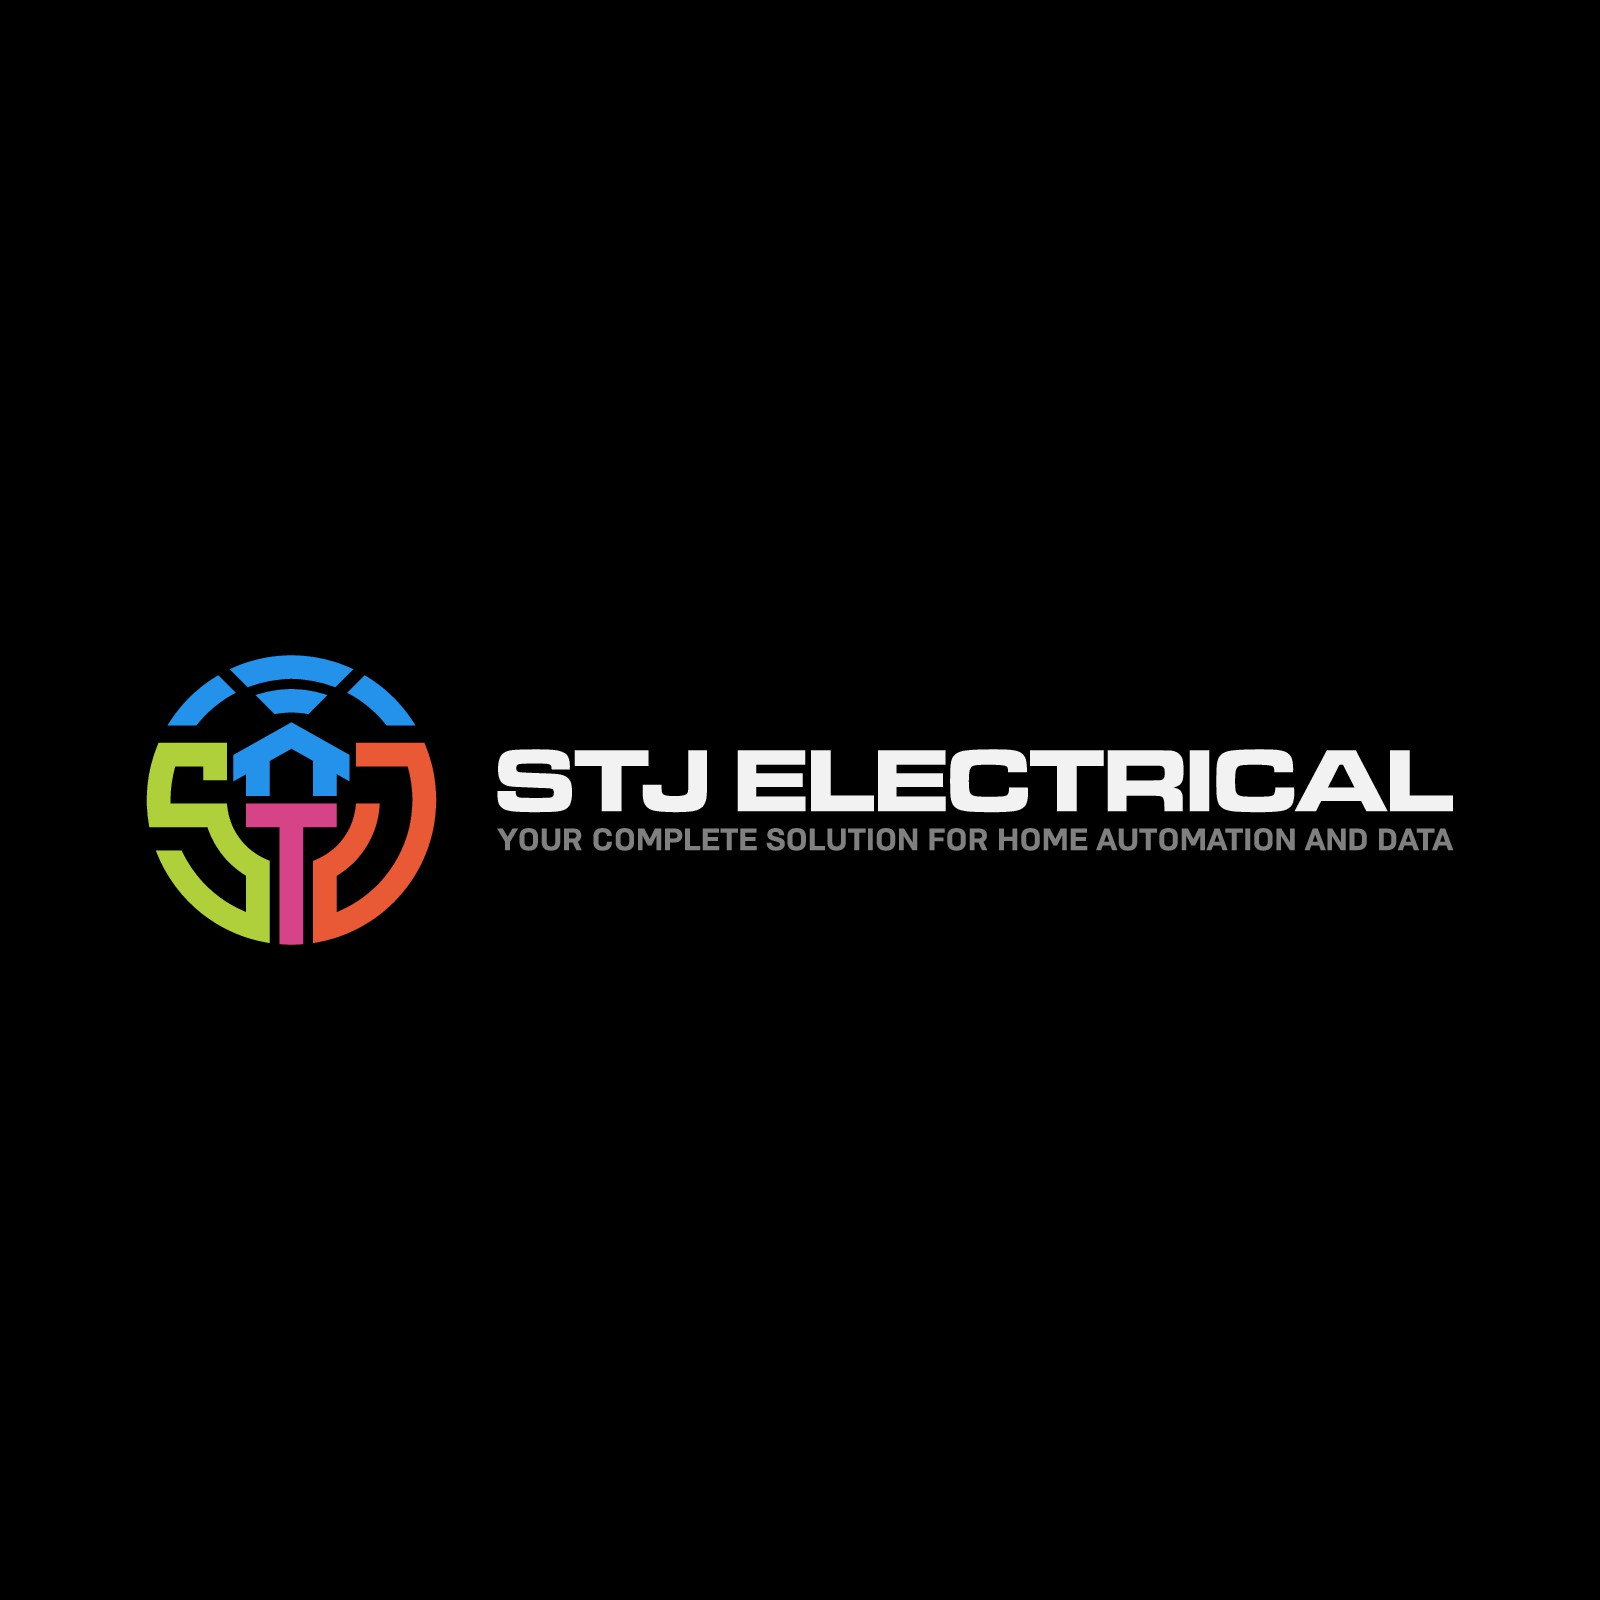 An electrical company moving forward with the times. The smart way.